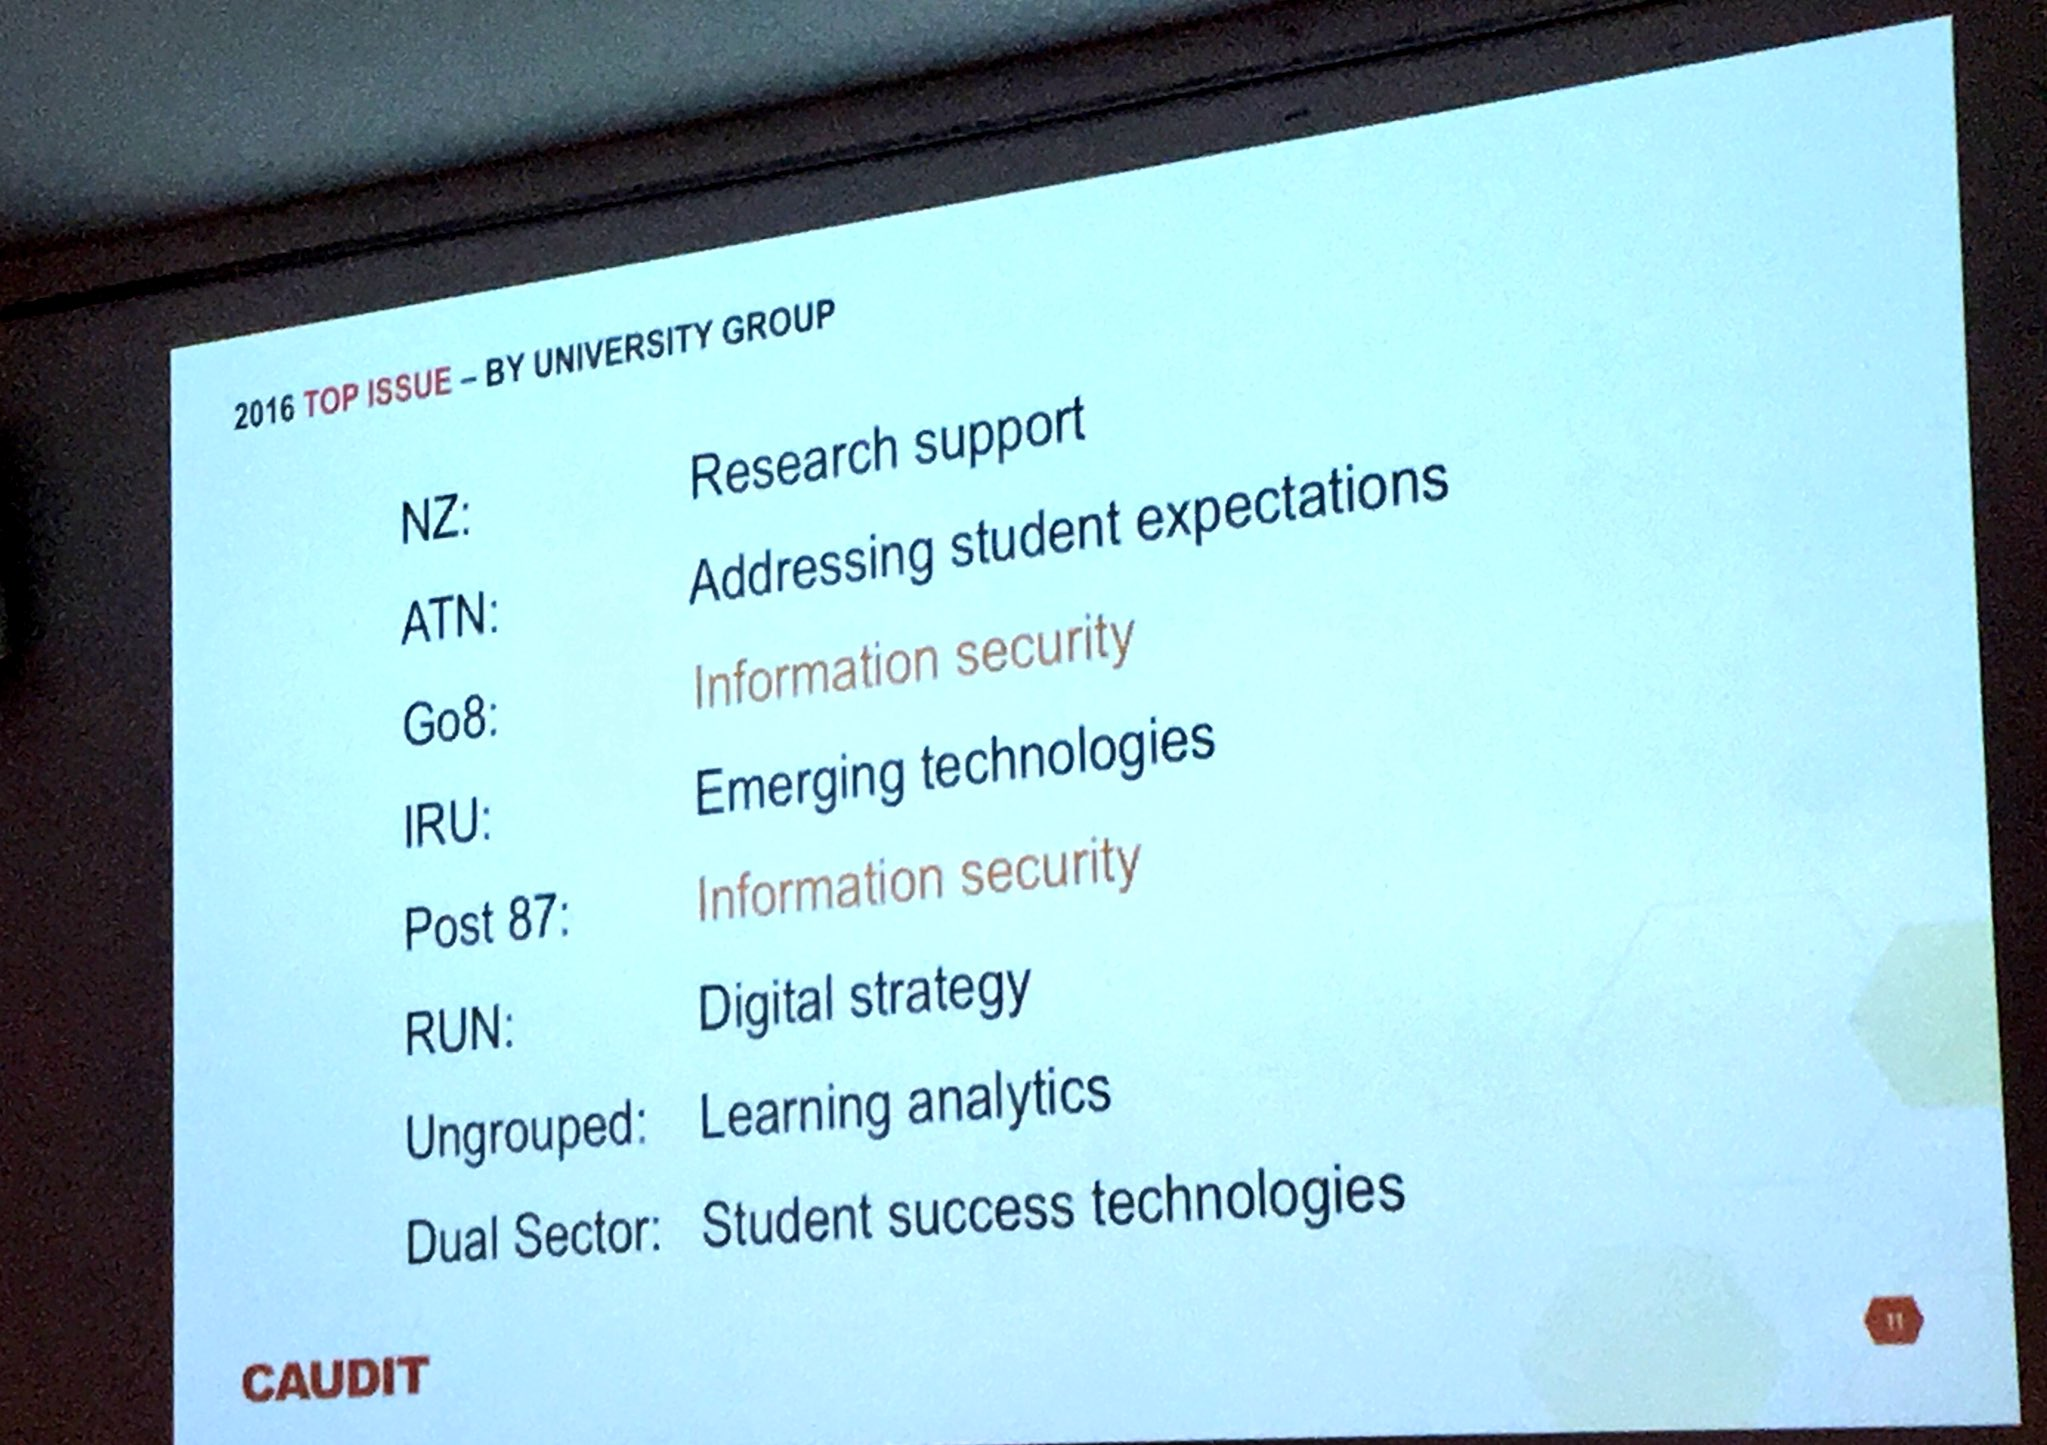 Top concerns for #CIOs in groupings #talisinsight #anz #highered #annekealley @CAUDITinc https://t.co/fDDAMTmgay